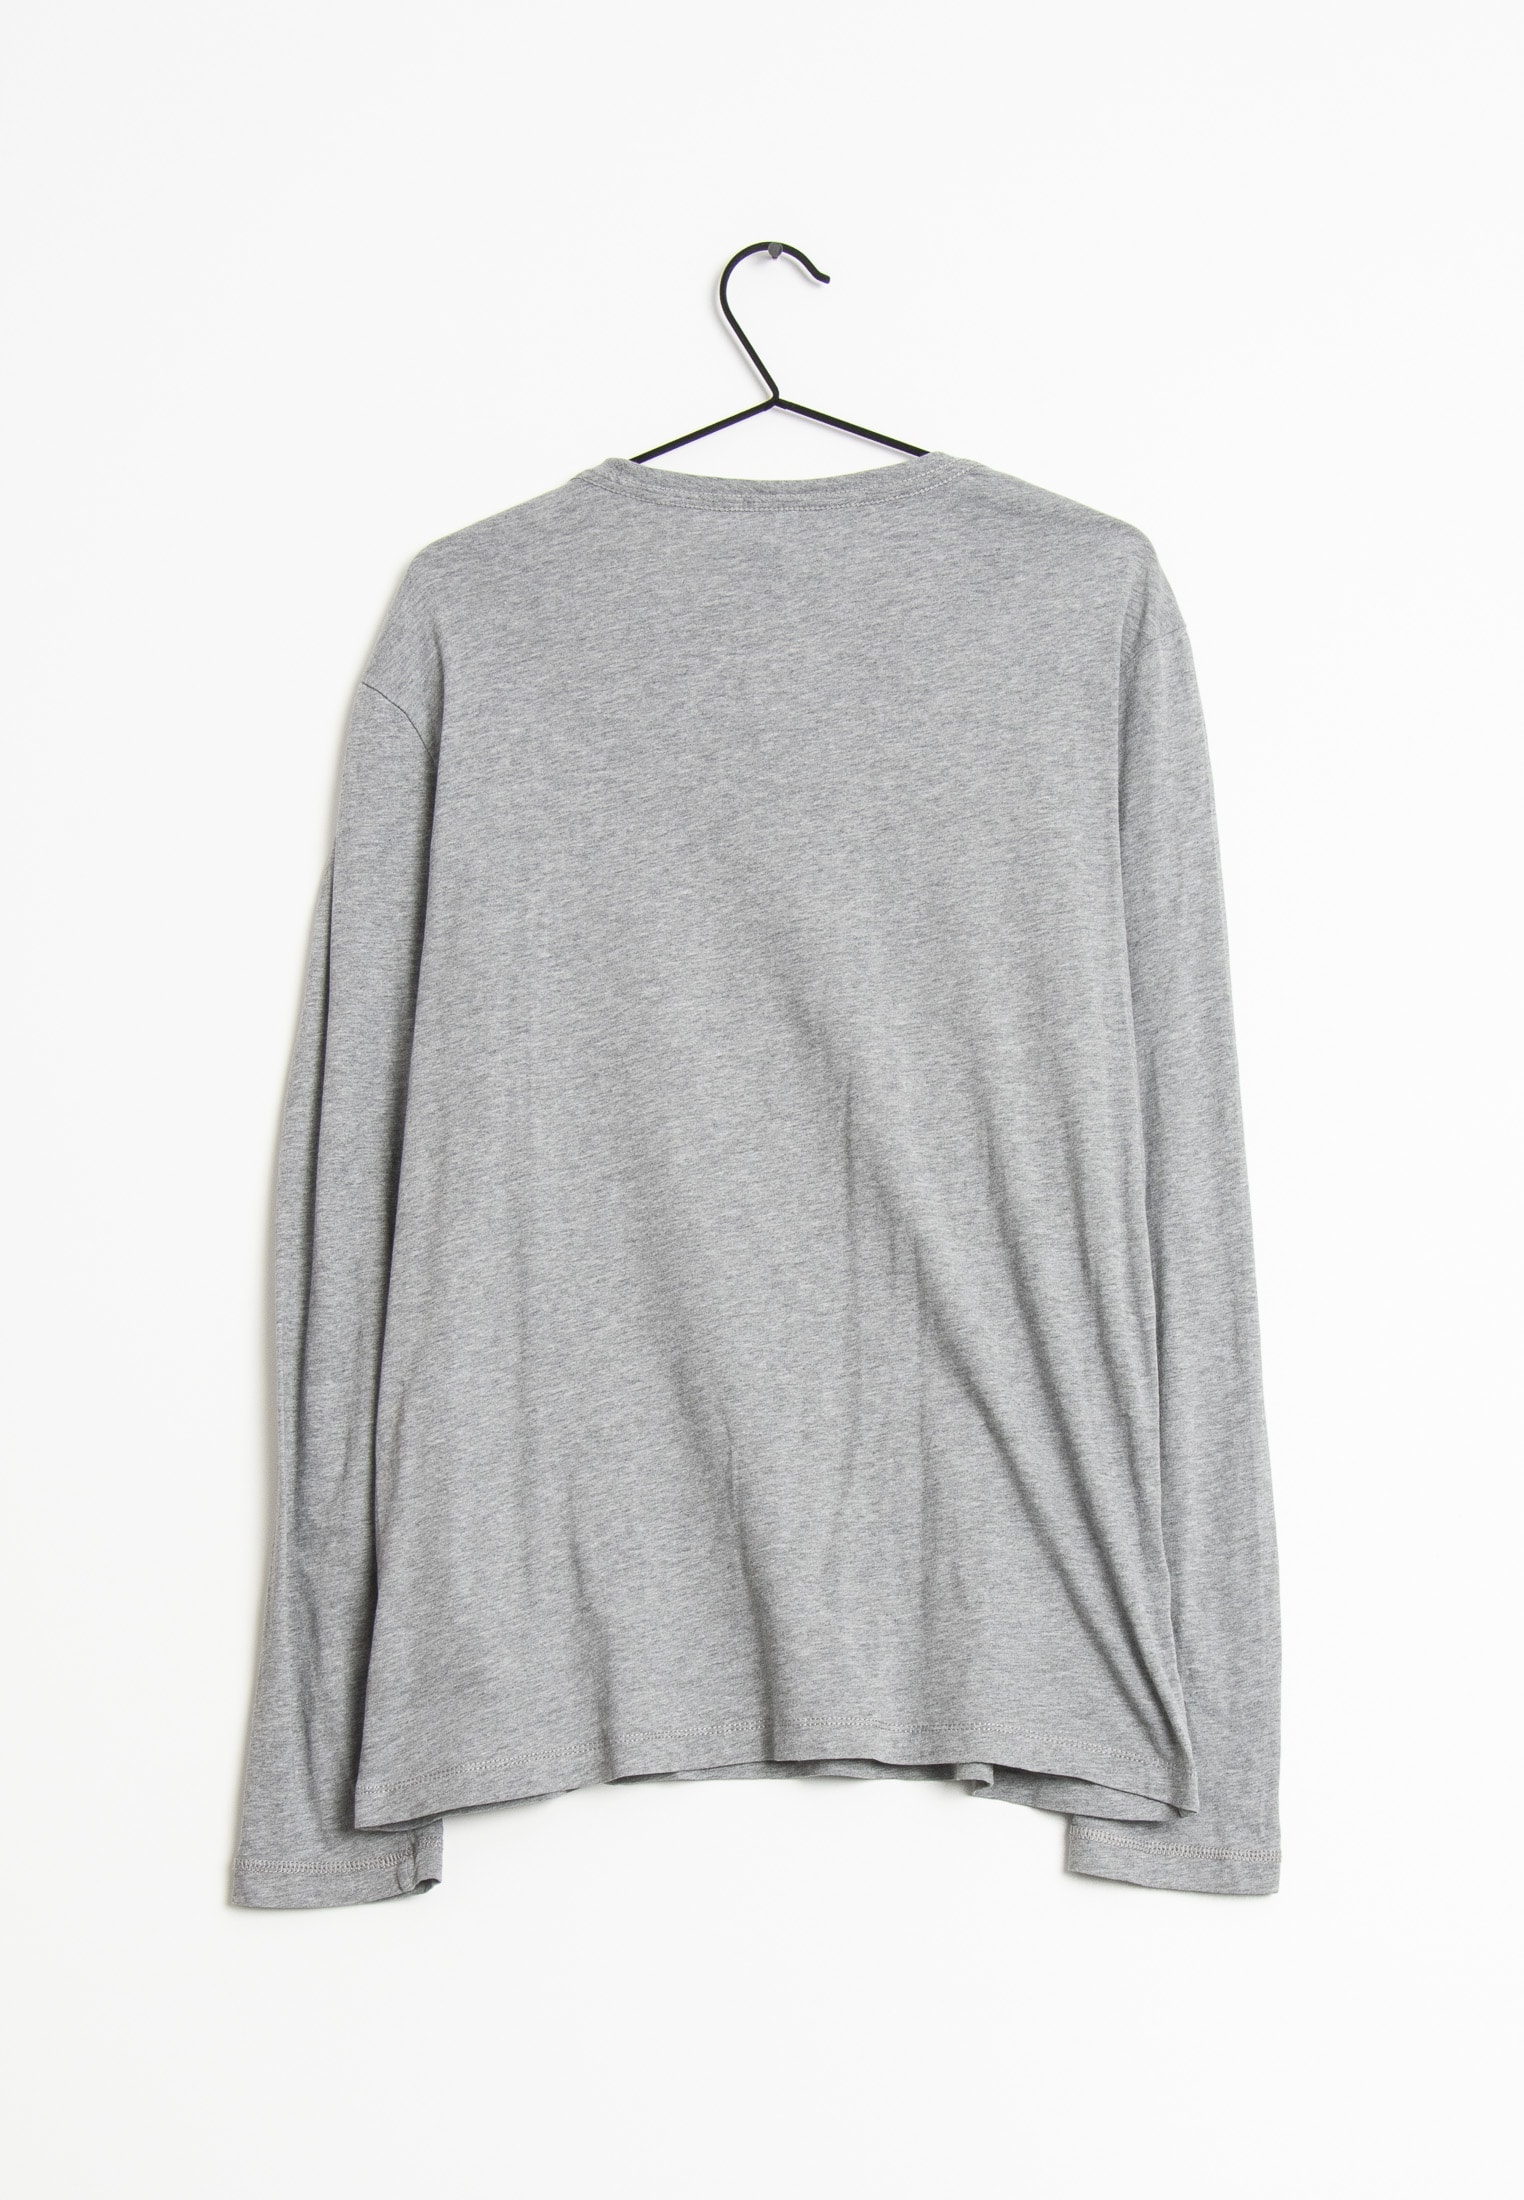 Napapijri Sweat / Fleece Grau Gr.L